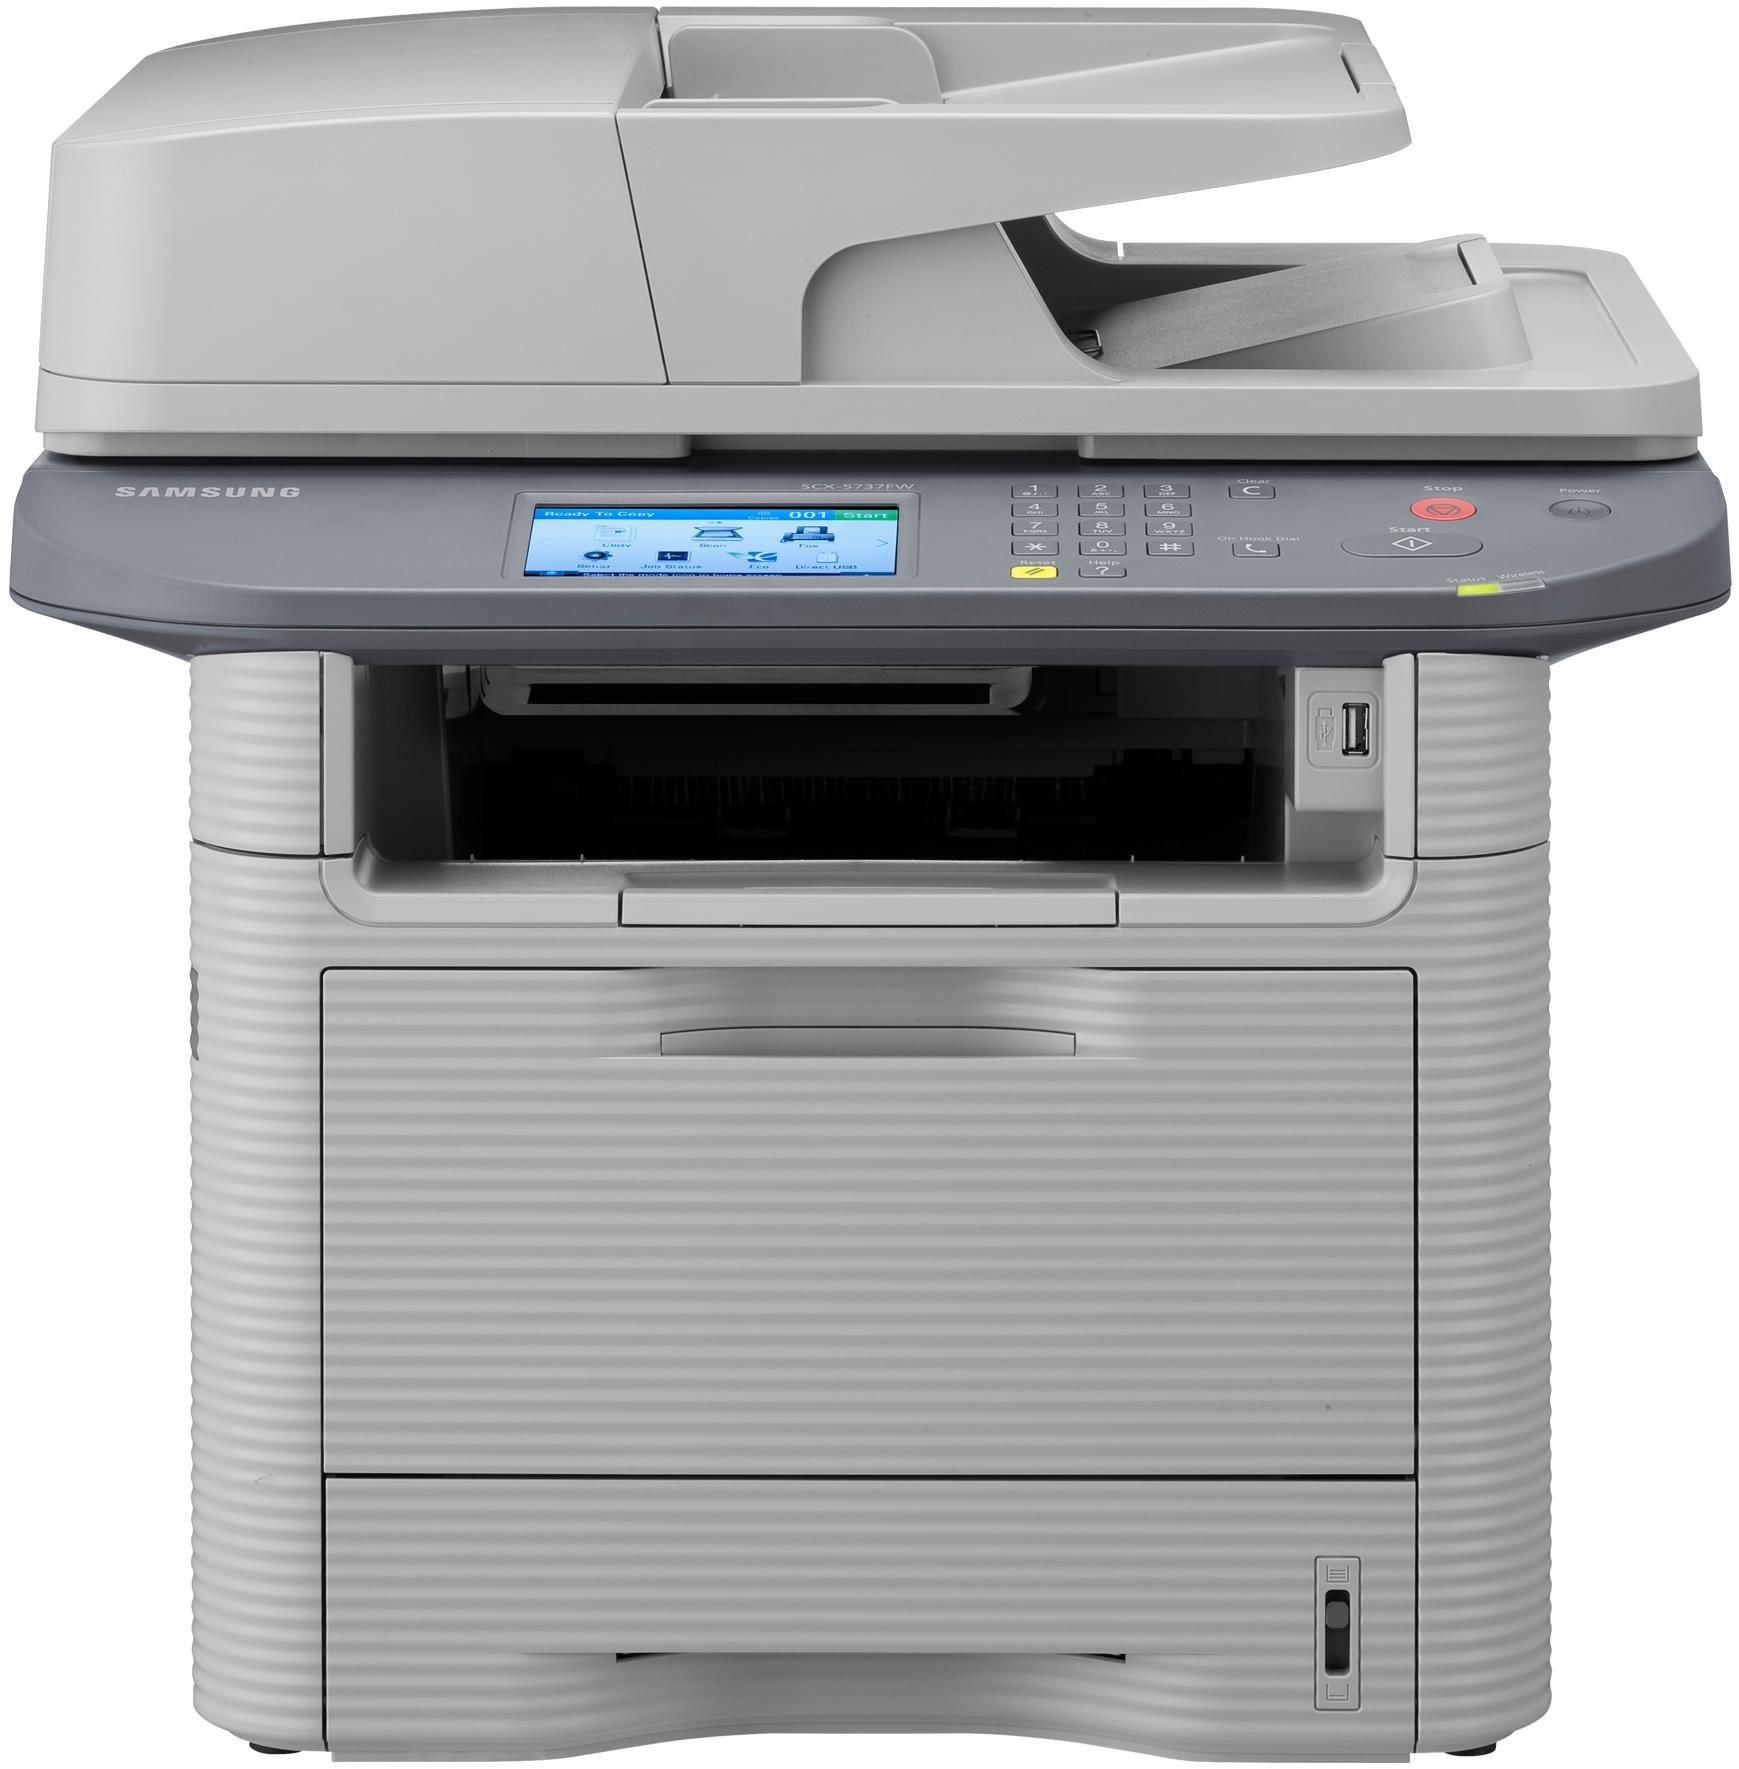 Samsung SCX-5737FW Mono Laser Wireless A4 USB Multi-Function Printer Scanner